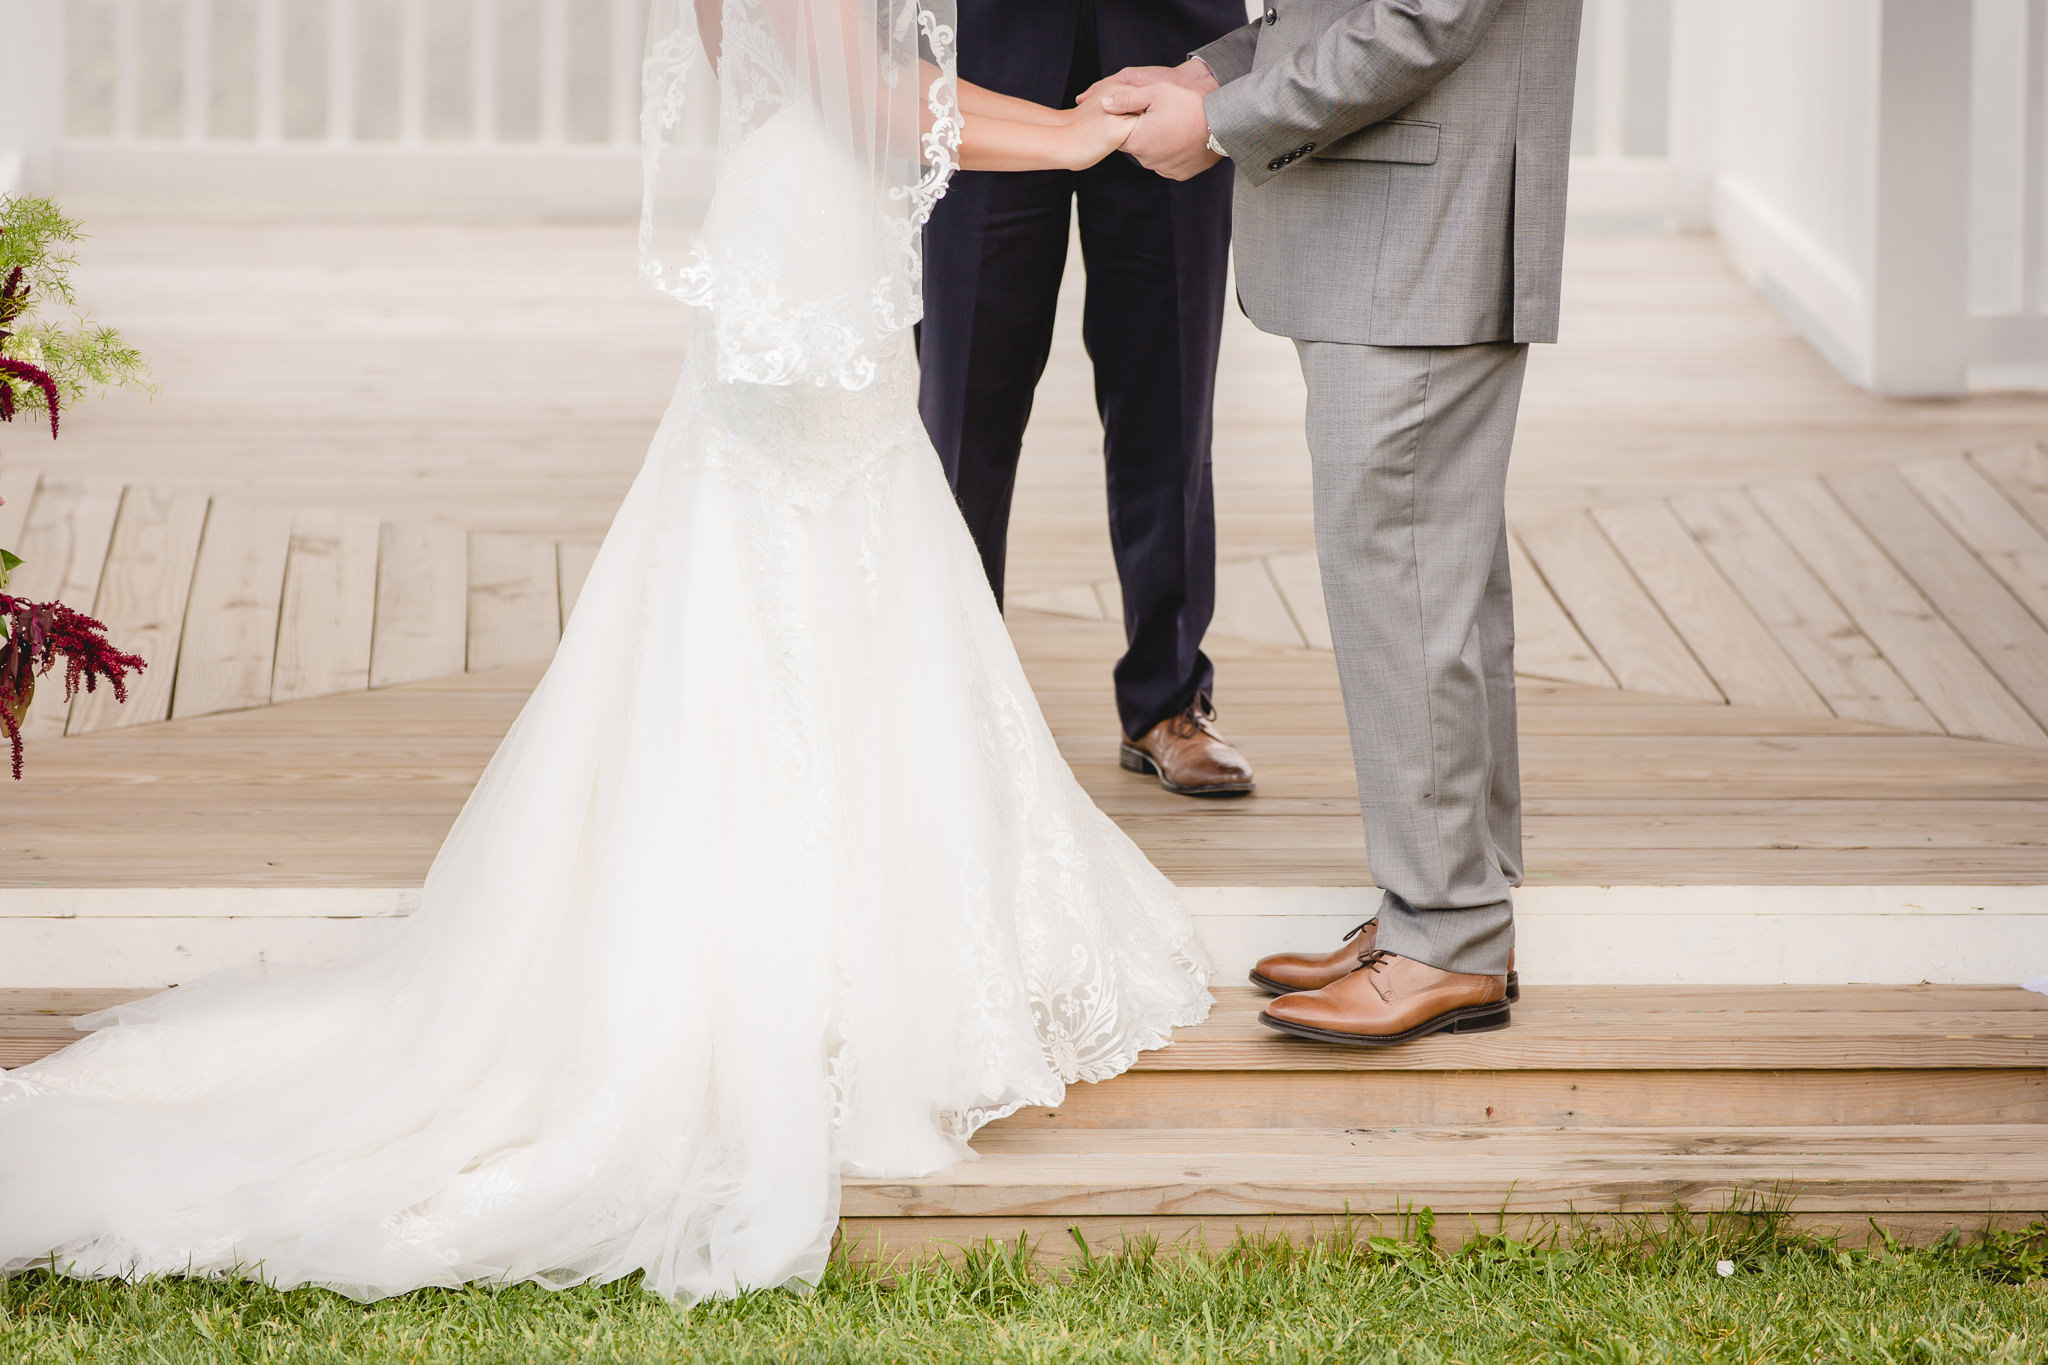 Bride and groom holding hands during their White Barn wedding ceremony